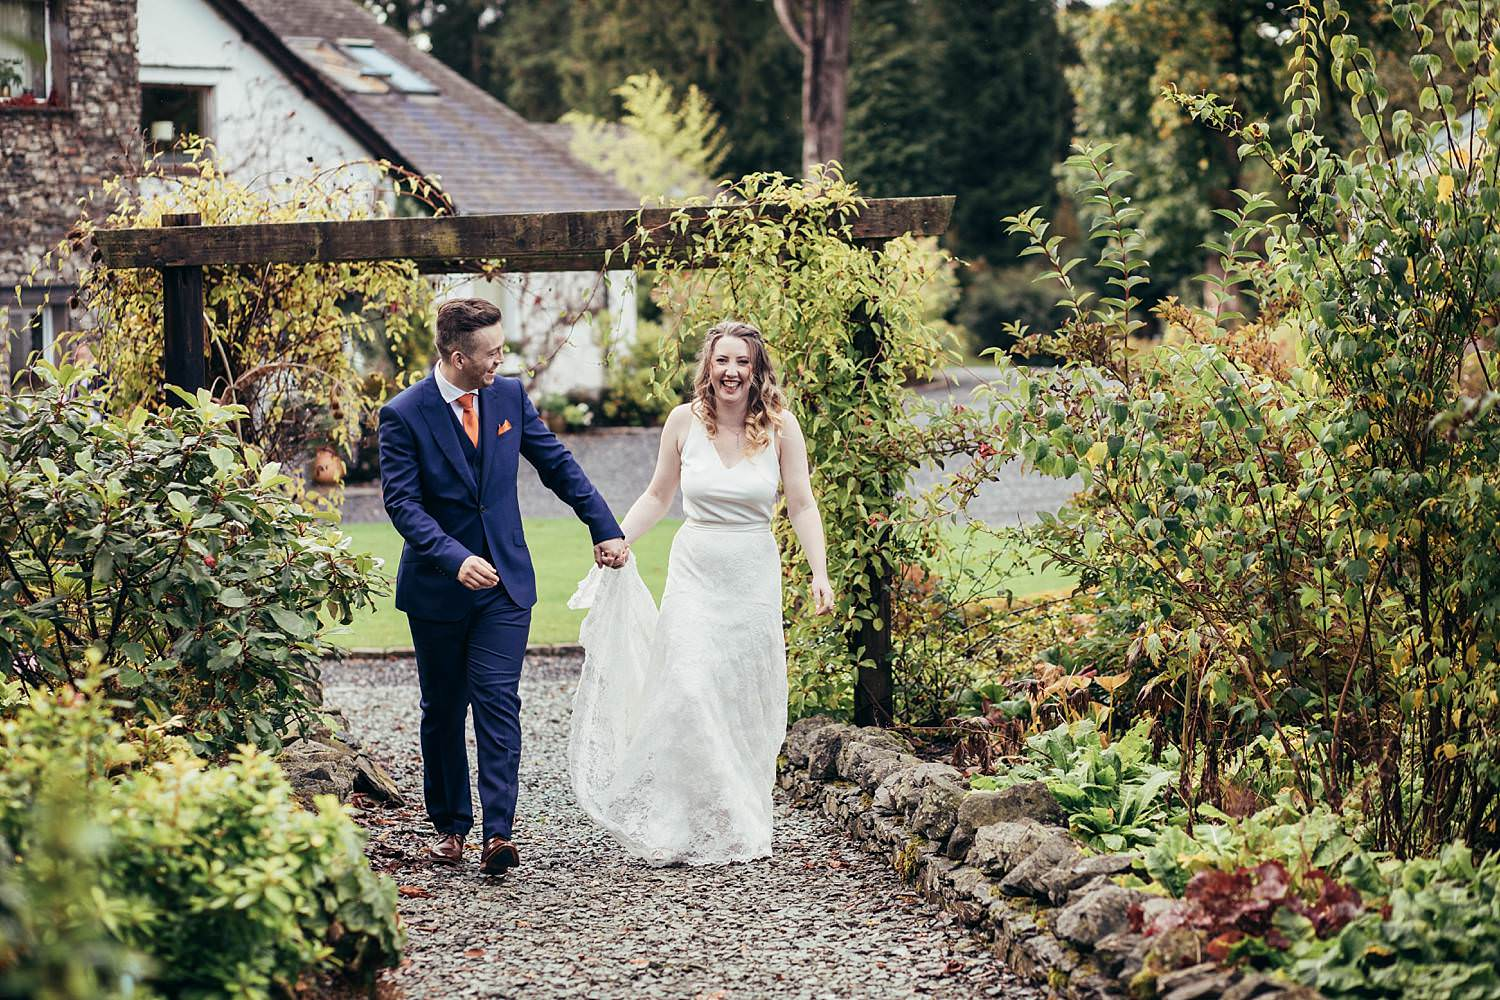 Bride and groom in the gardens at Gilpin Lake House wedding photography